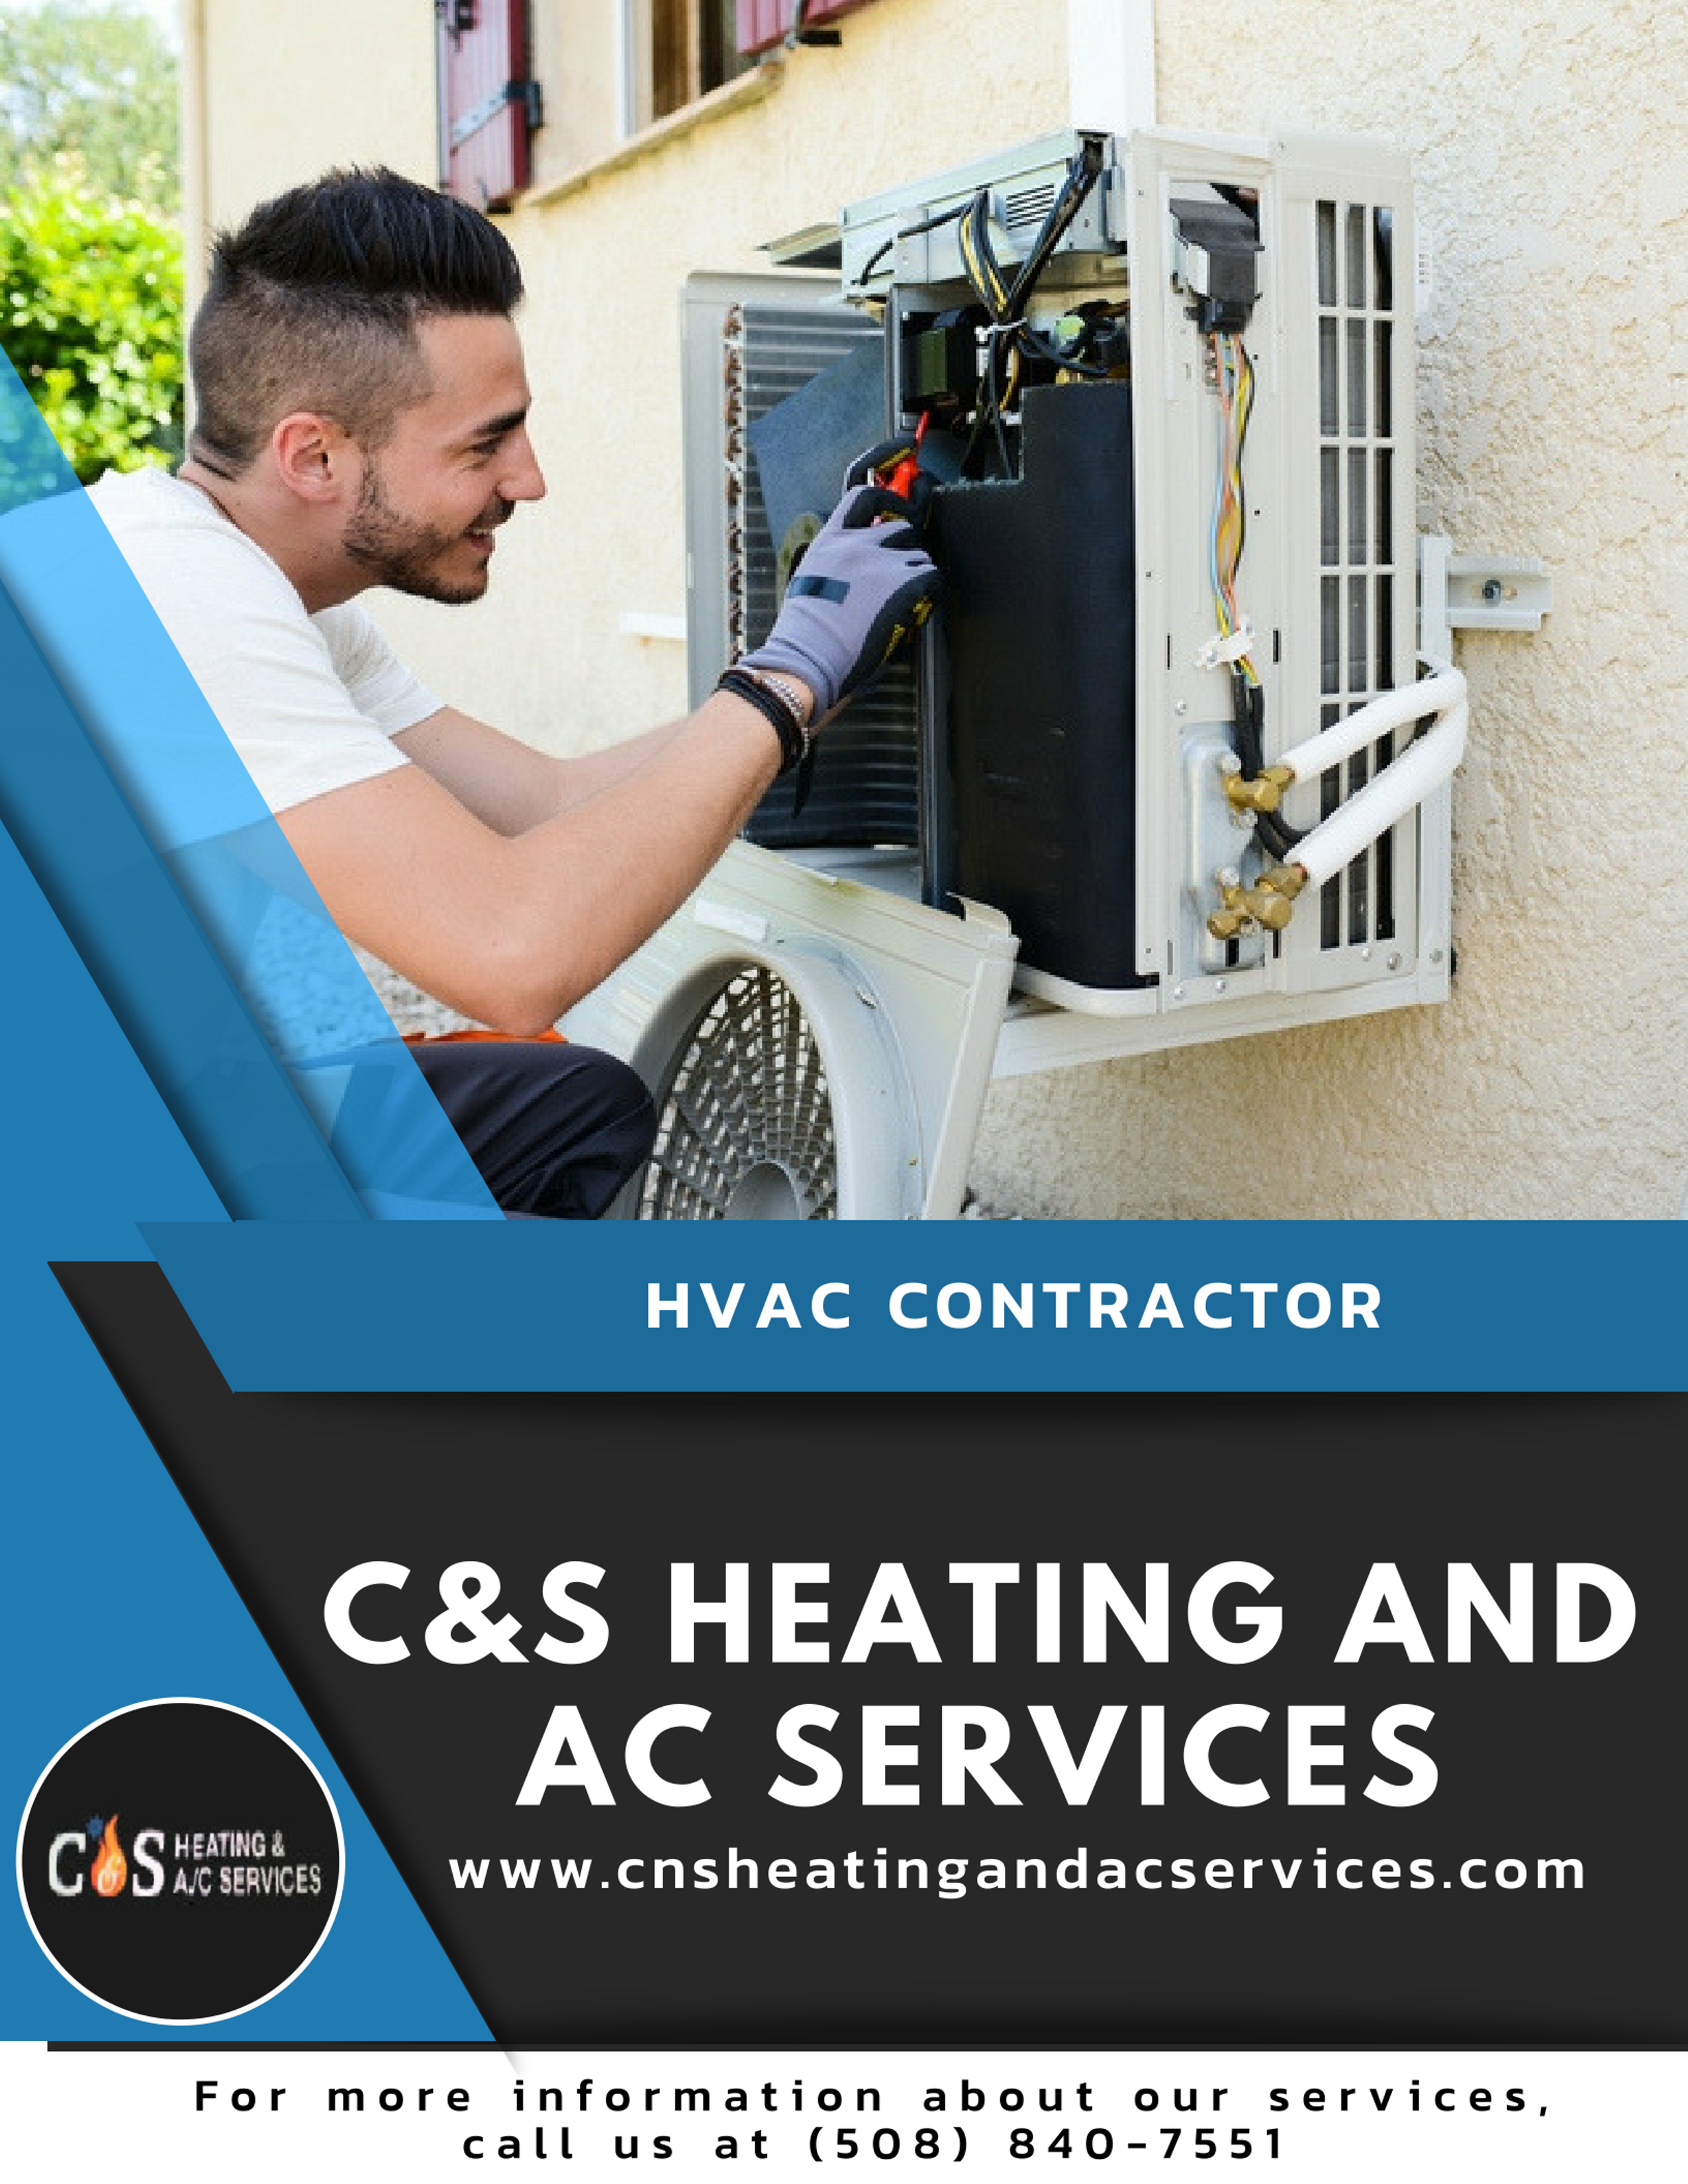 We Specialize In Hvac Contractor In Raynham Ma Air Conditioning Contractor In Raynham Ma Ducts Hvac Contractor Hvac Services Air Conditioning Installation